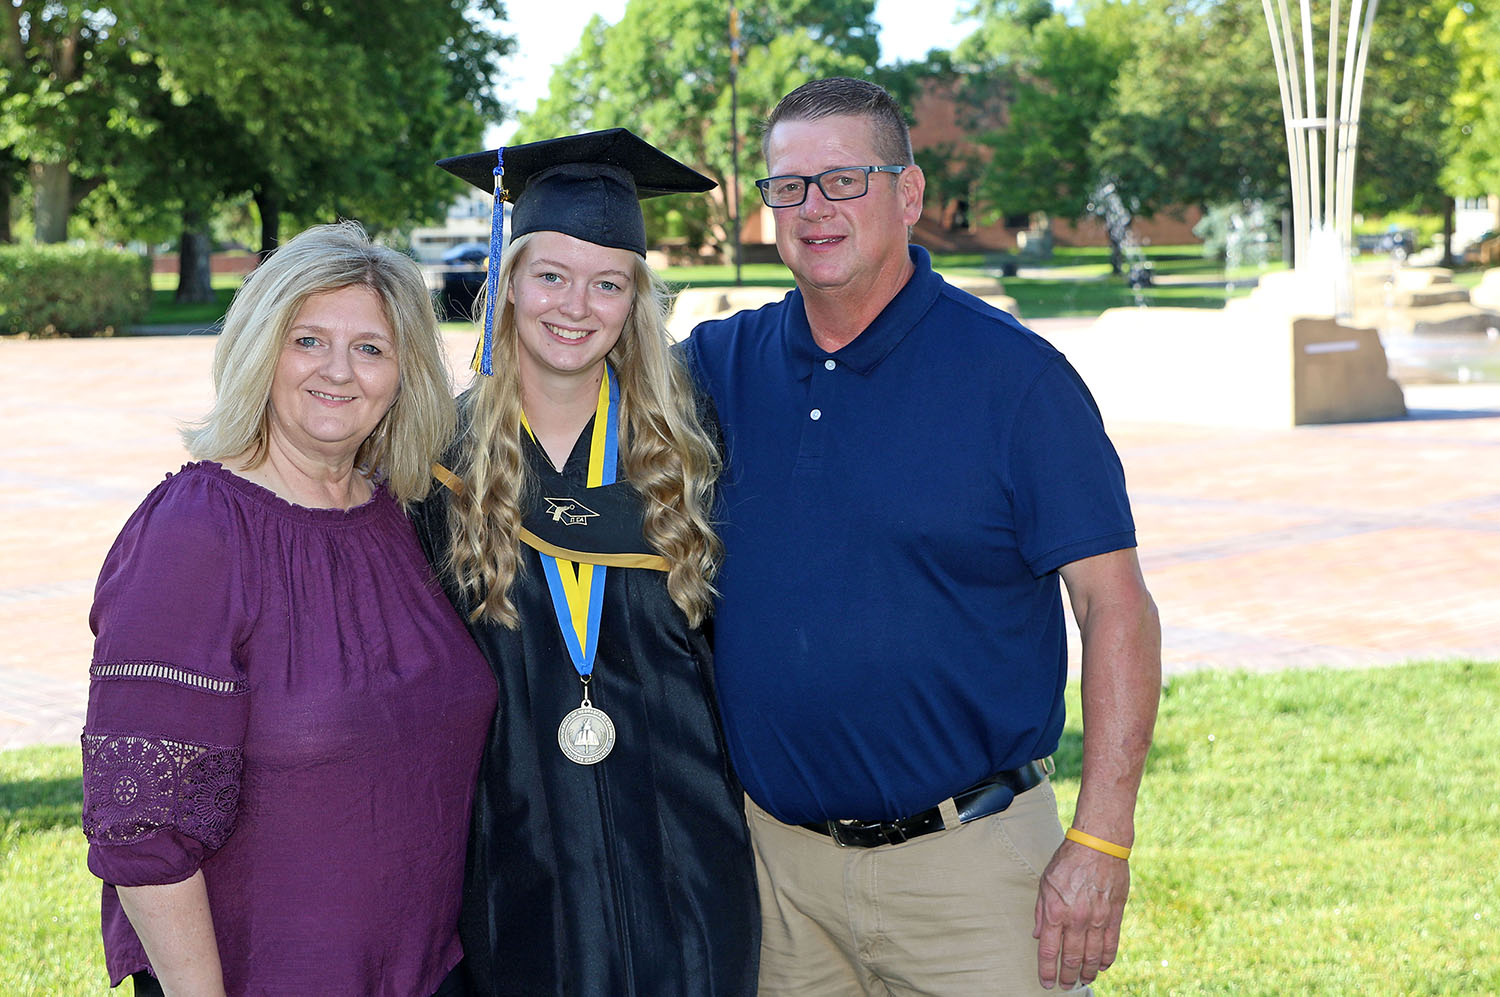 UNK graduate Madison Clausen of Norfolk poses for a photo with her parents Penny and Mark before Friday's commencement ceremony. Clausen earned a bachelor's degree in communication disorders and she'll pursue a master's in speech-language pathology at UNK this fall.